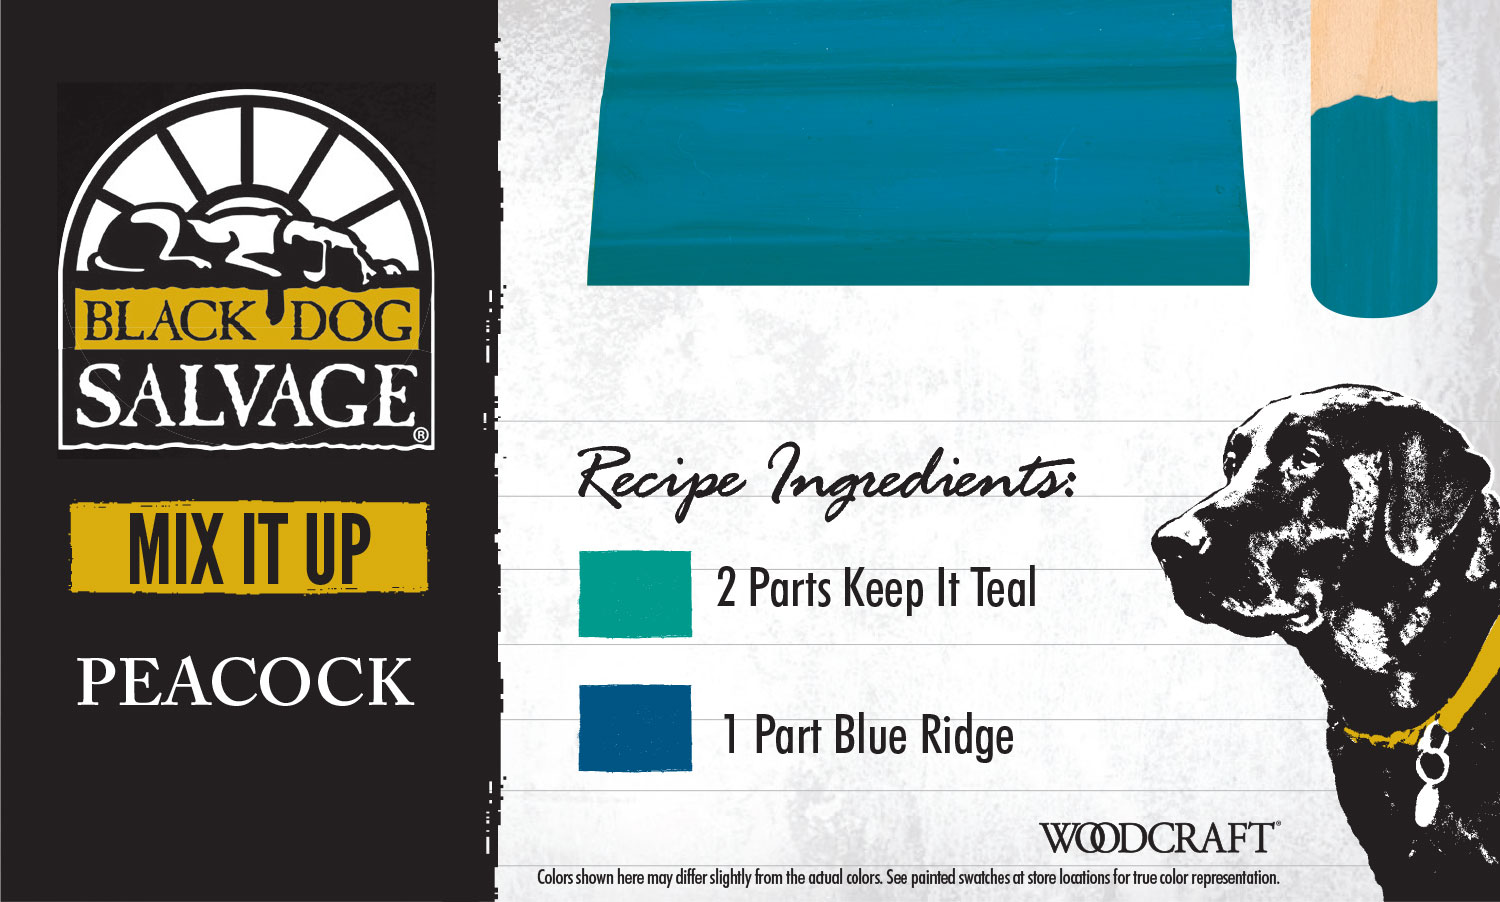 """""""Peacock"""" is made from2 Parts """"Keep It Teal"""" and 1 Part"""" Blue Ridge"""""""